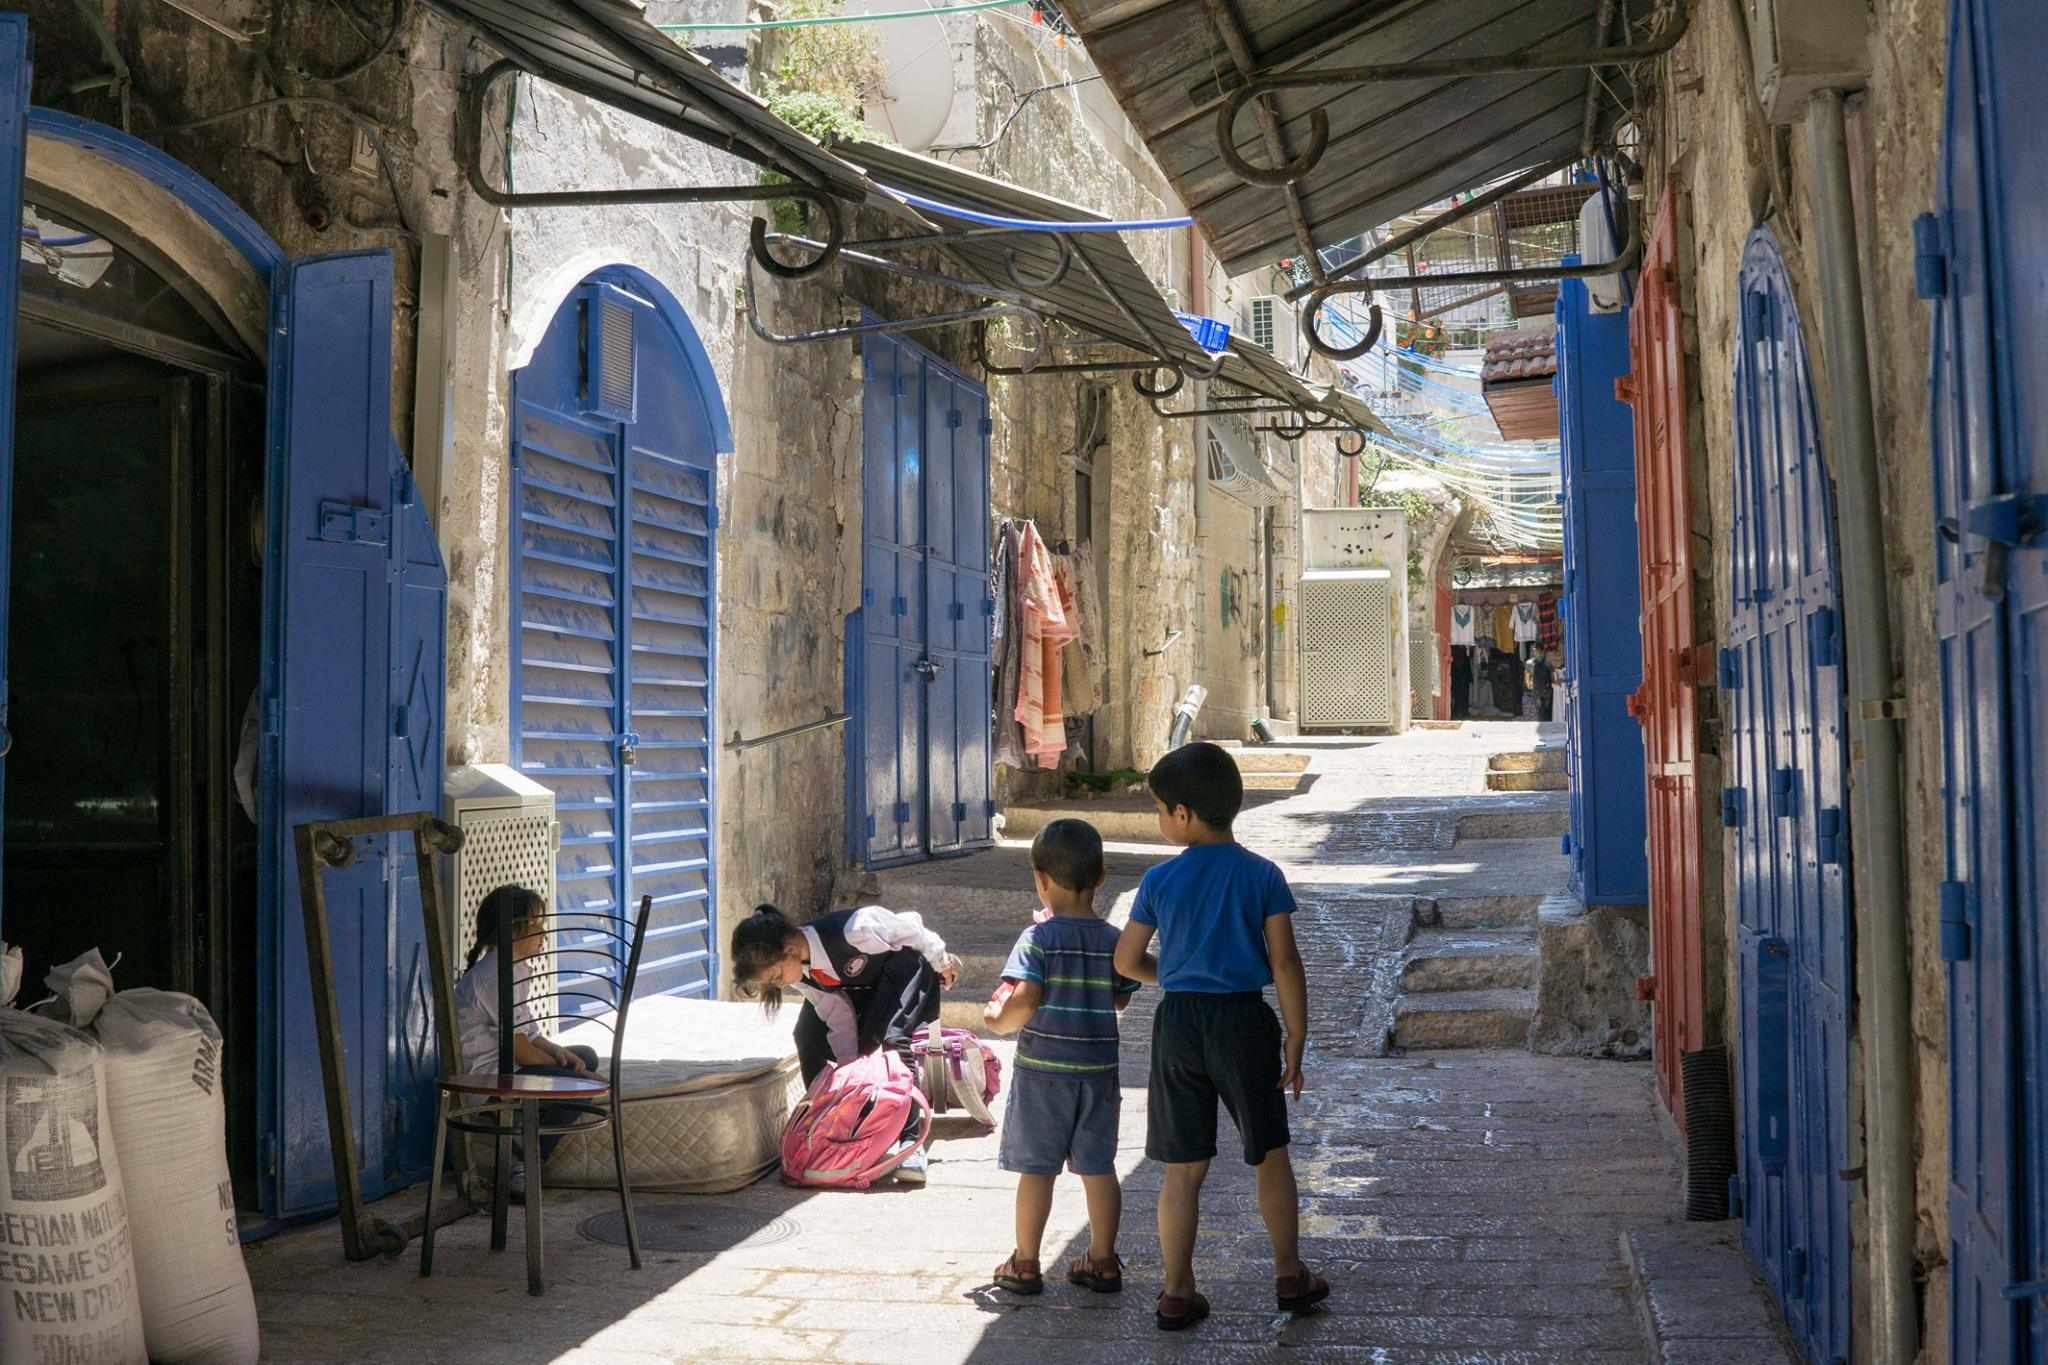 israel-old-city-kids-kim-lawson.jpg